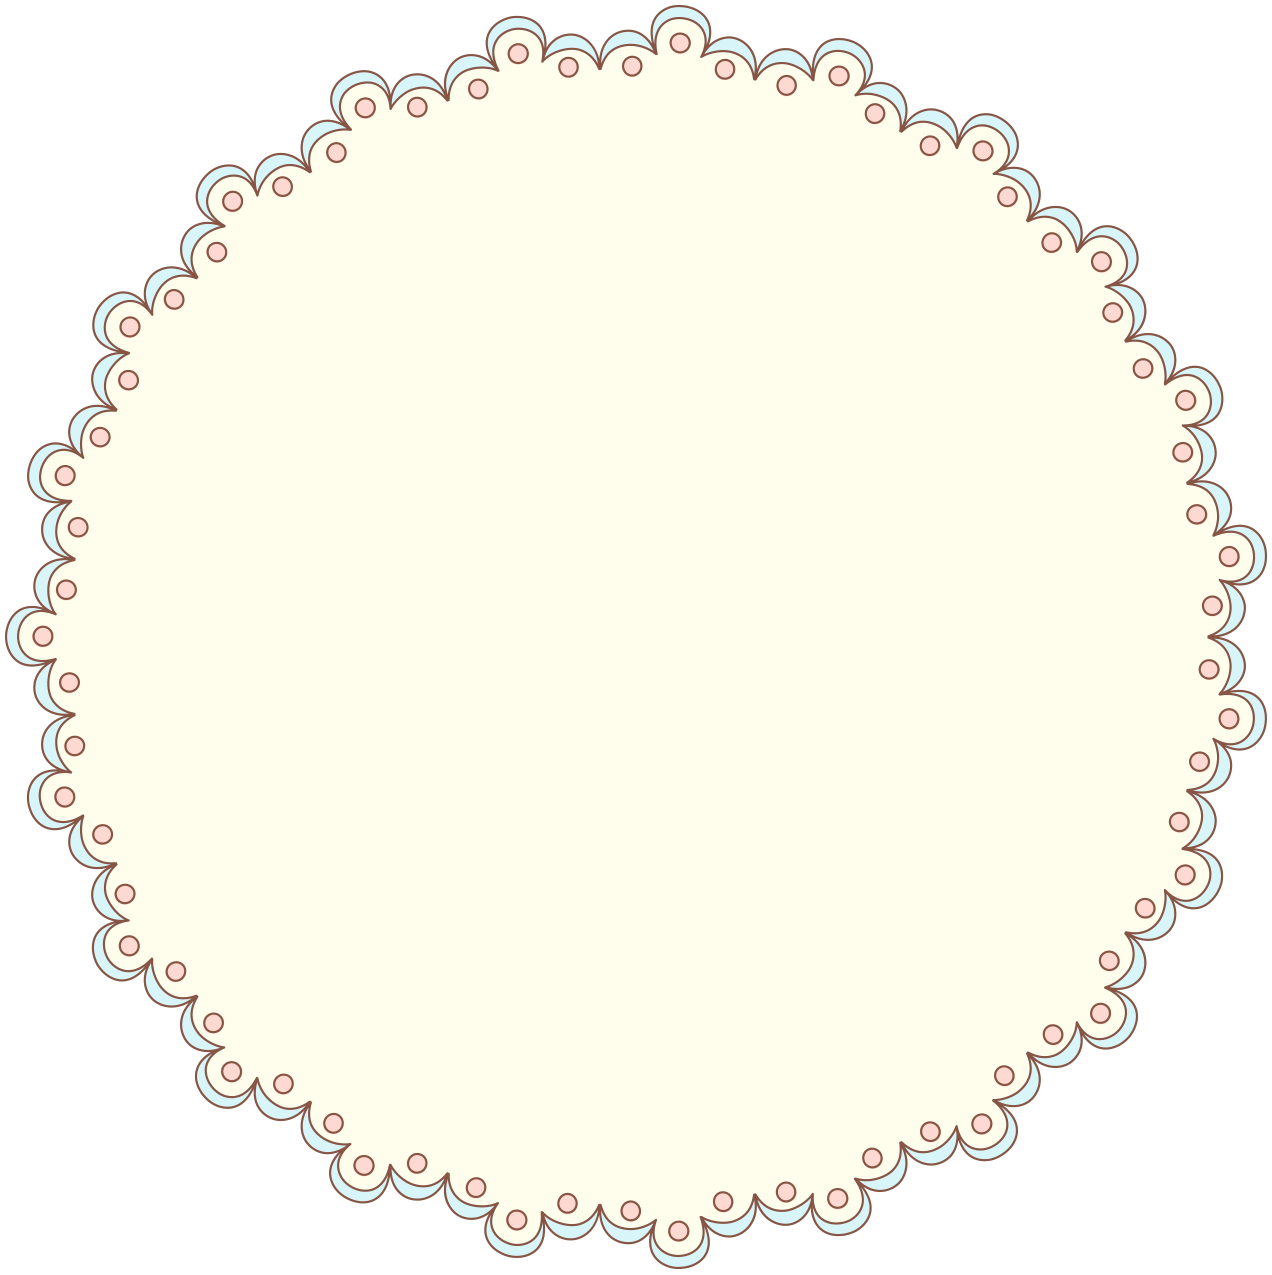 Doily png. Free clipart designer resources